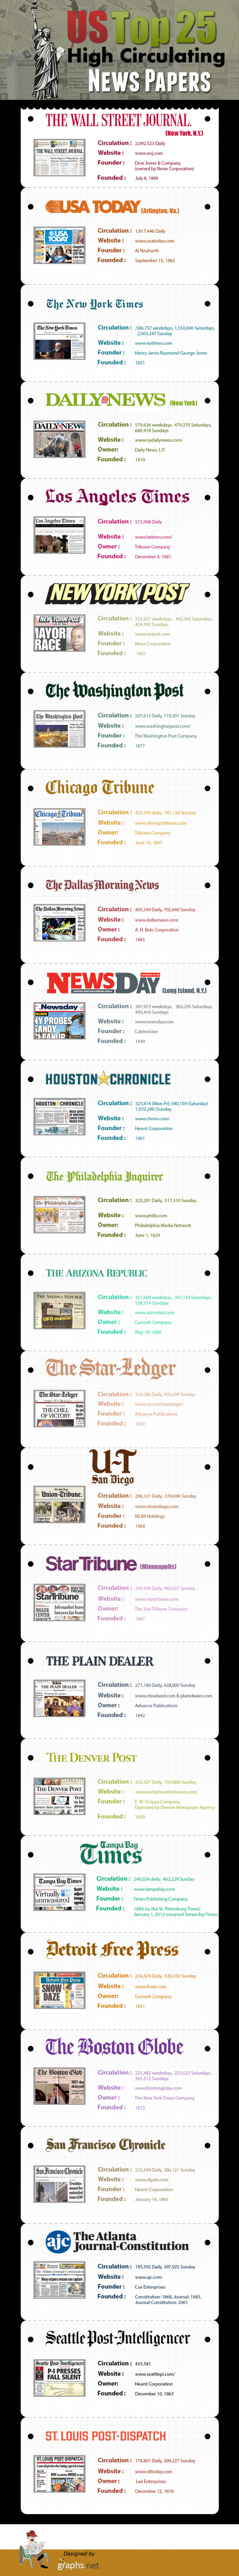 25 most circulating news papers in US